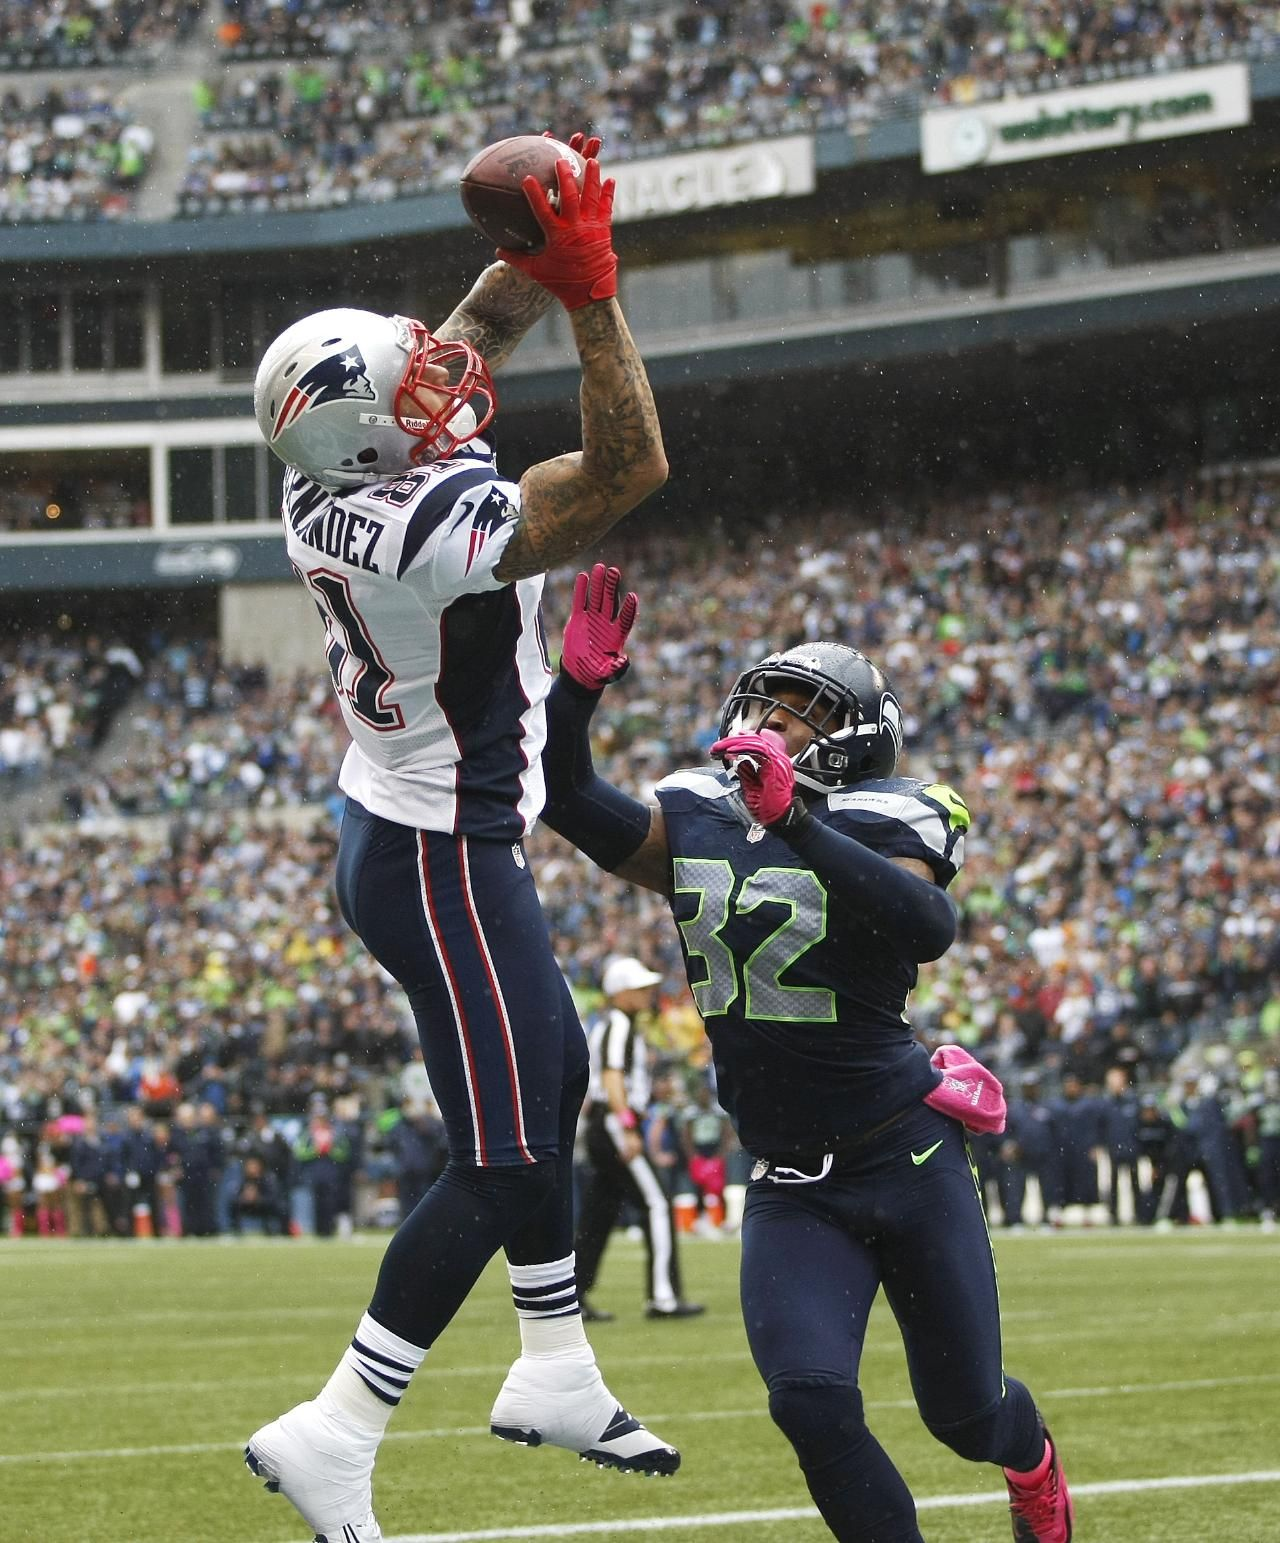 New England Patriots Aaron Hernandez Makes A Catch For A Touchdown Above The Defense Of Seattle Seahawks Jeron Joh Football Seahawks Football Ravens Football